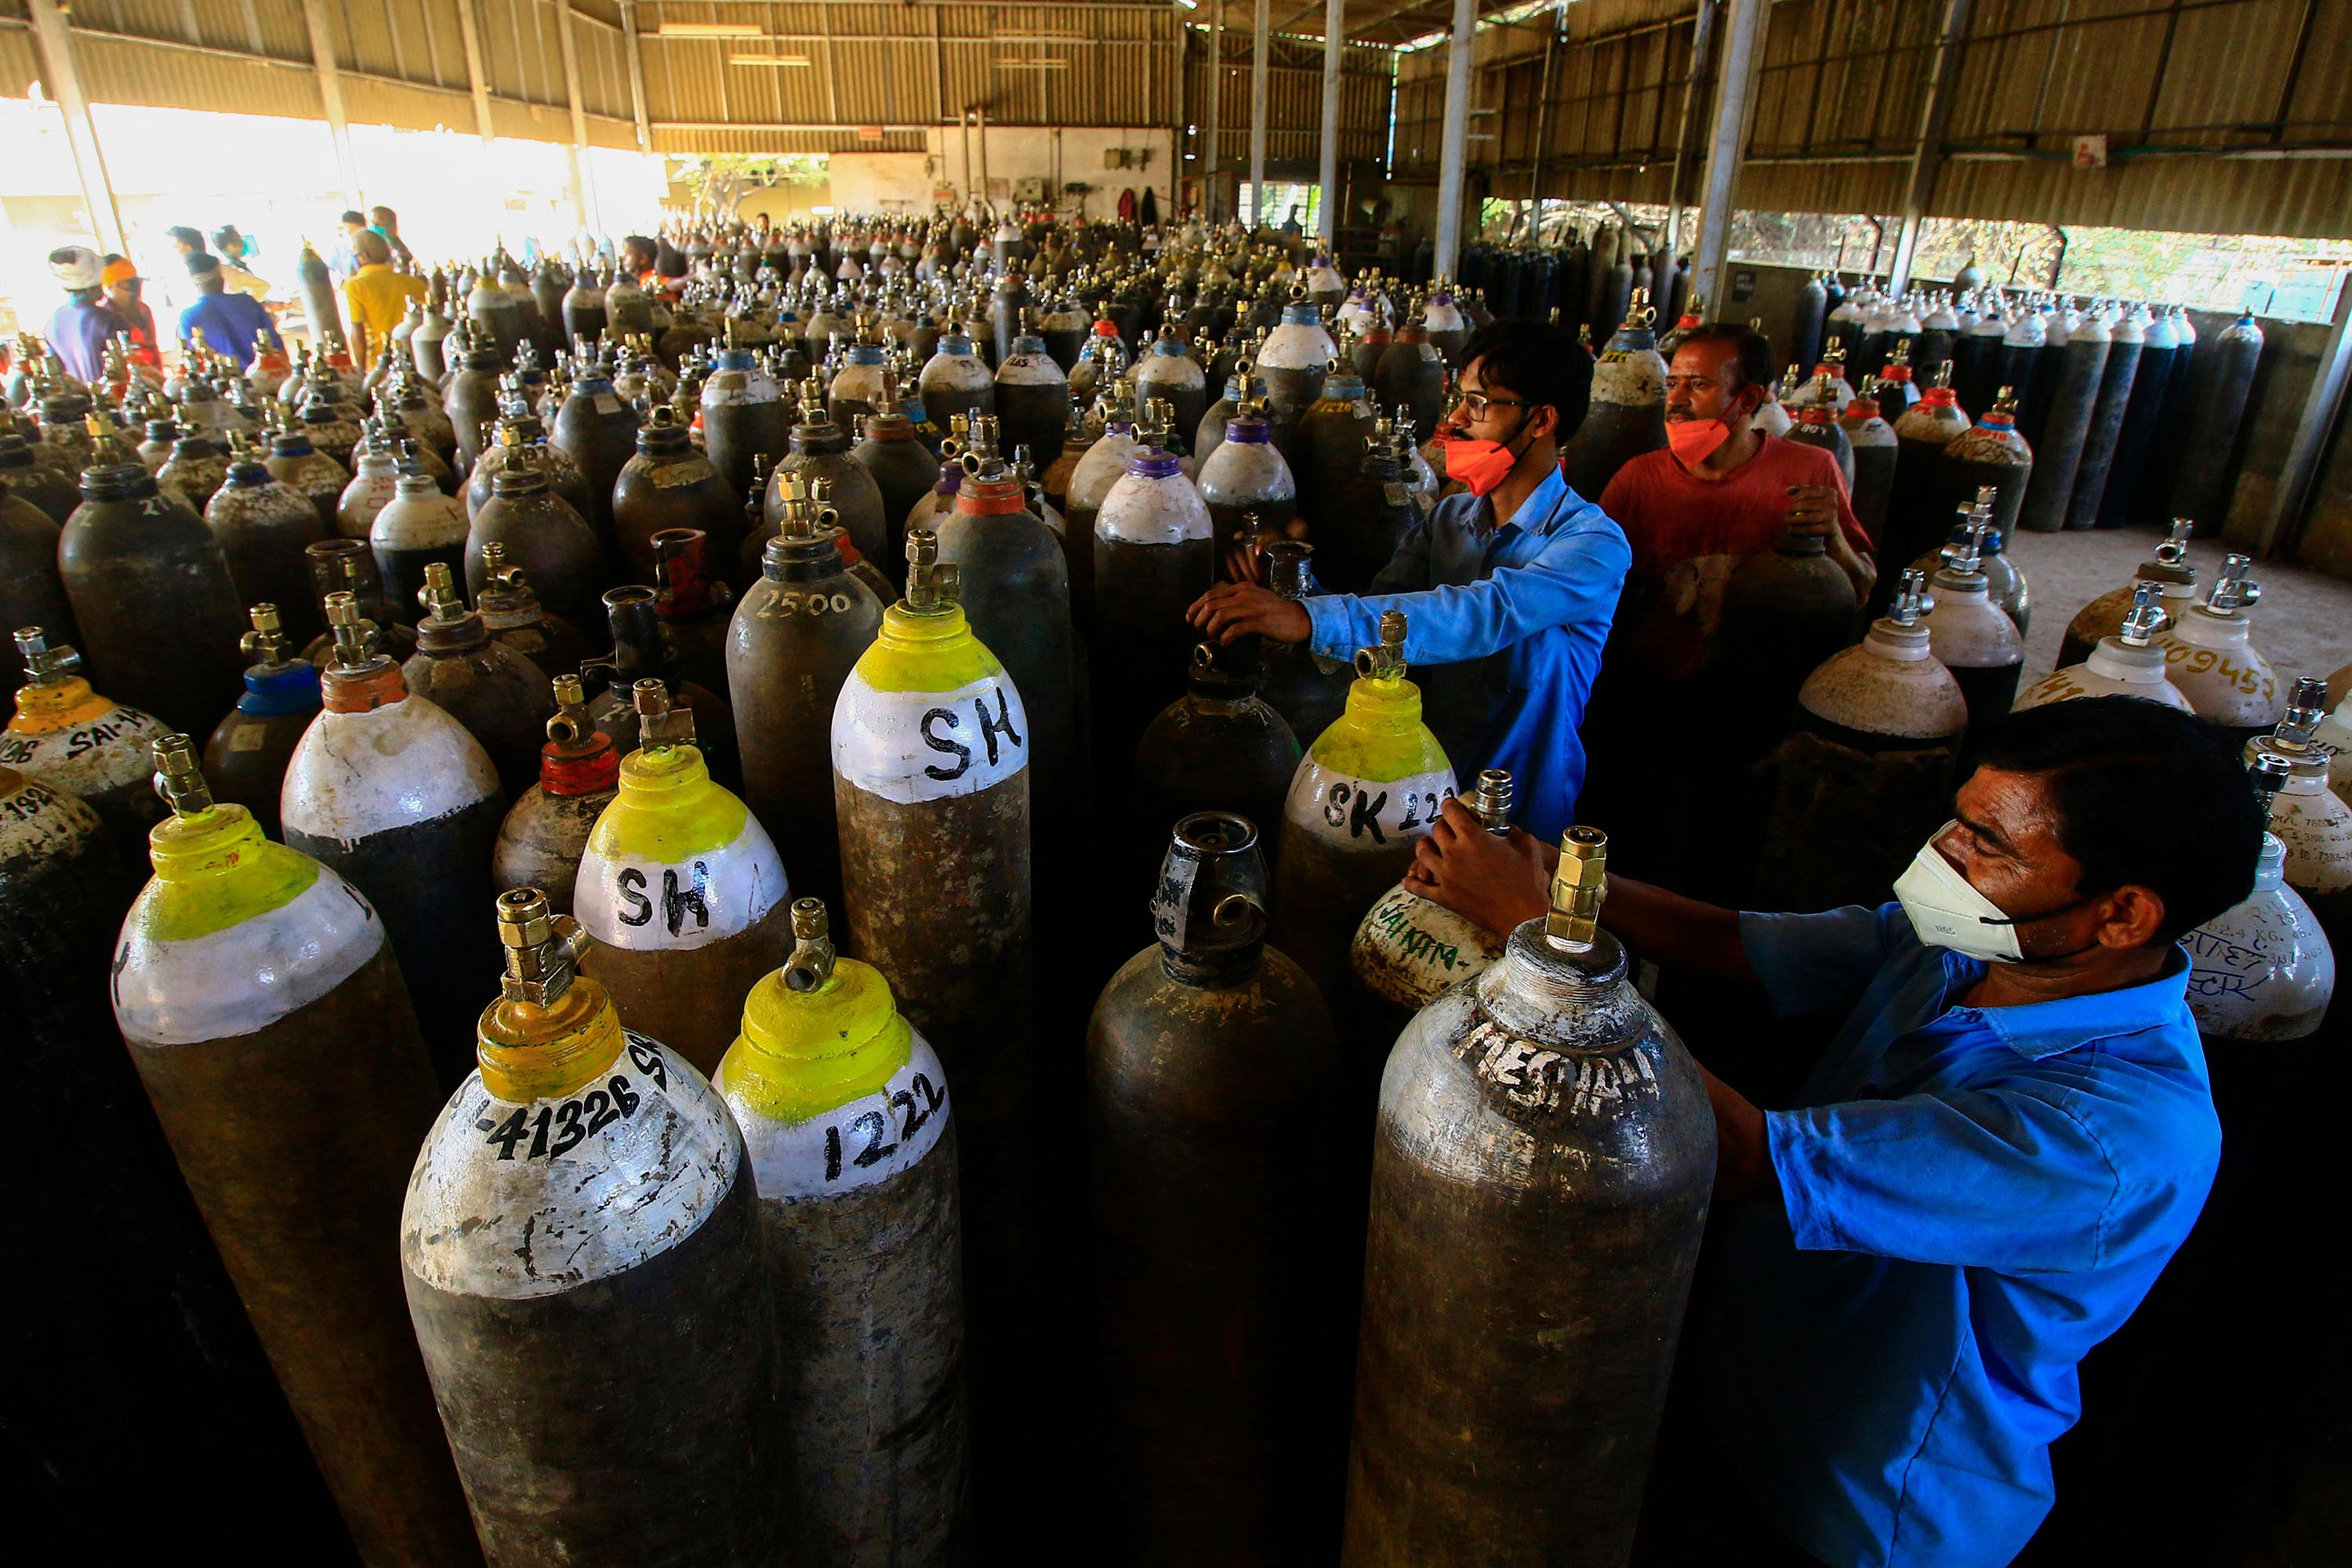 Workers are preparing to fill oxygen cylinders for hospital treatment of Covid-19 patients on the outskirts of Jabalpur, India on April 18.